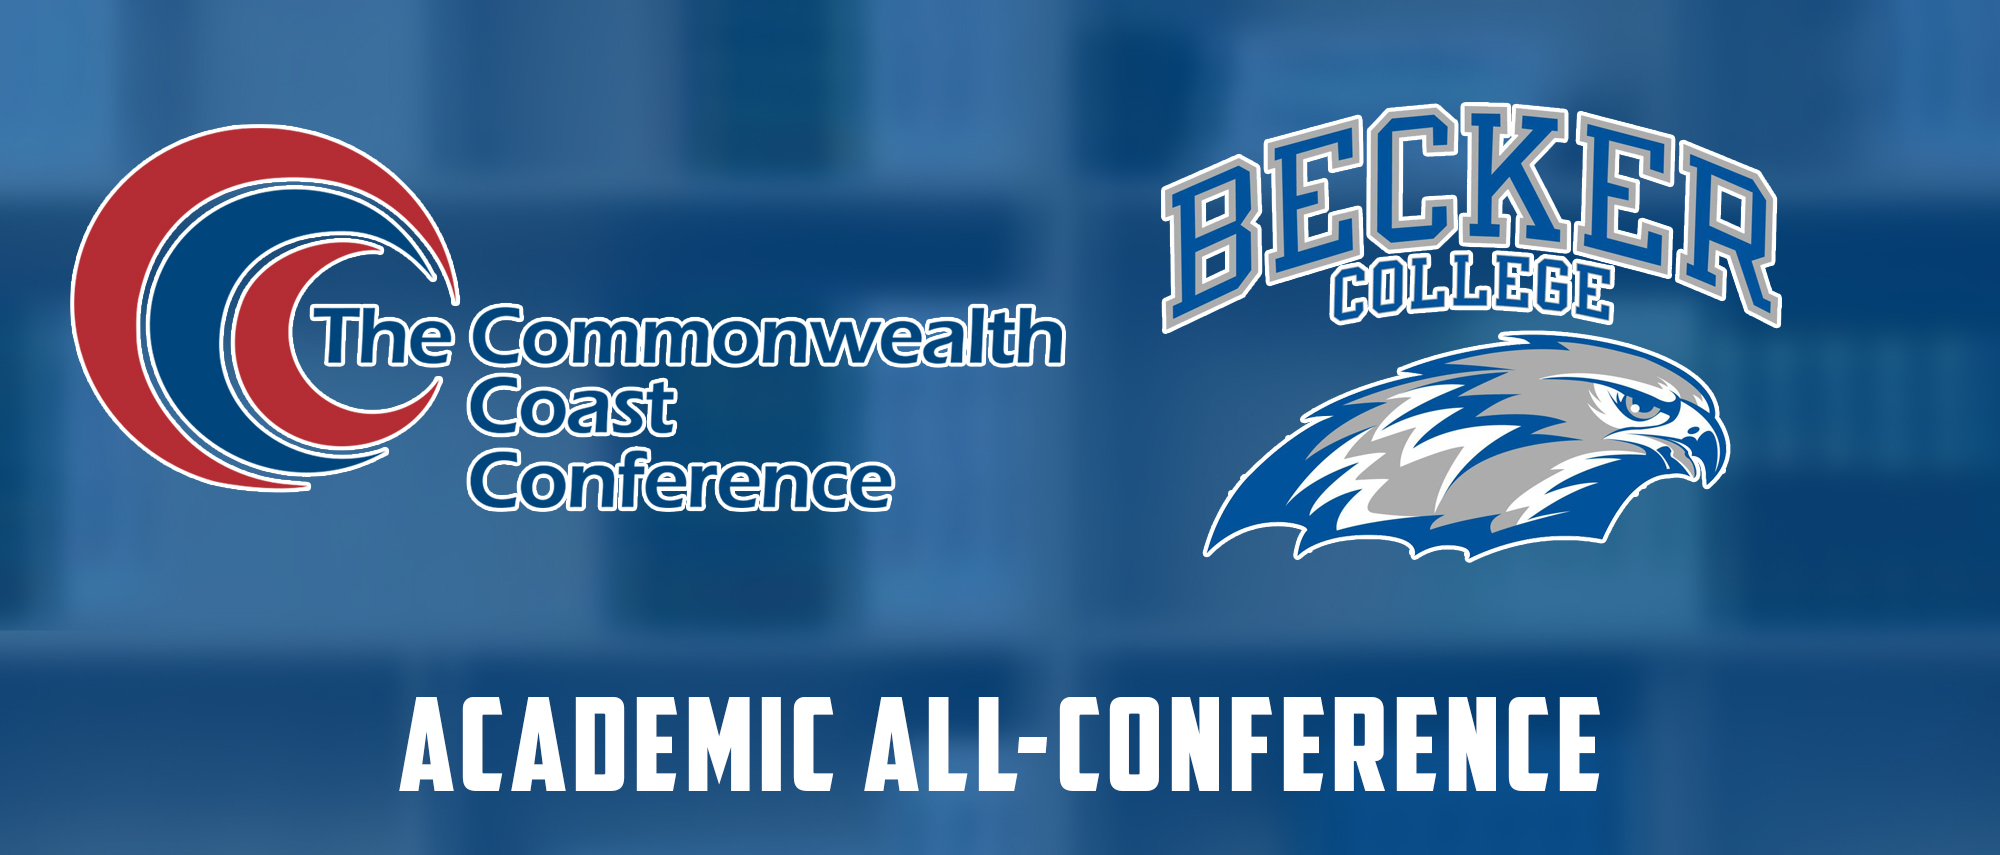 CCC 2019 Spring Academic All-Conference